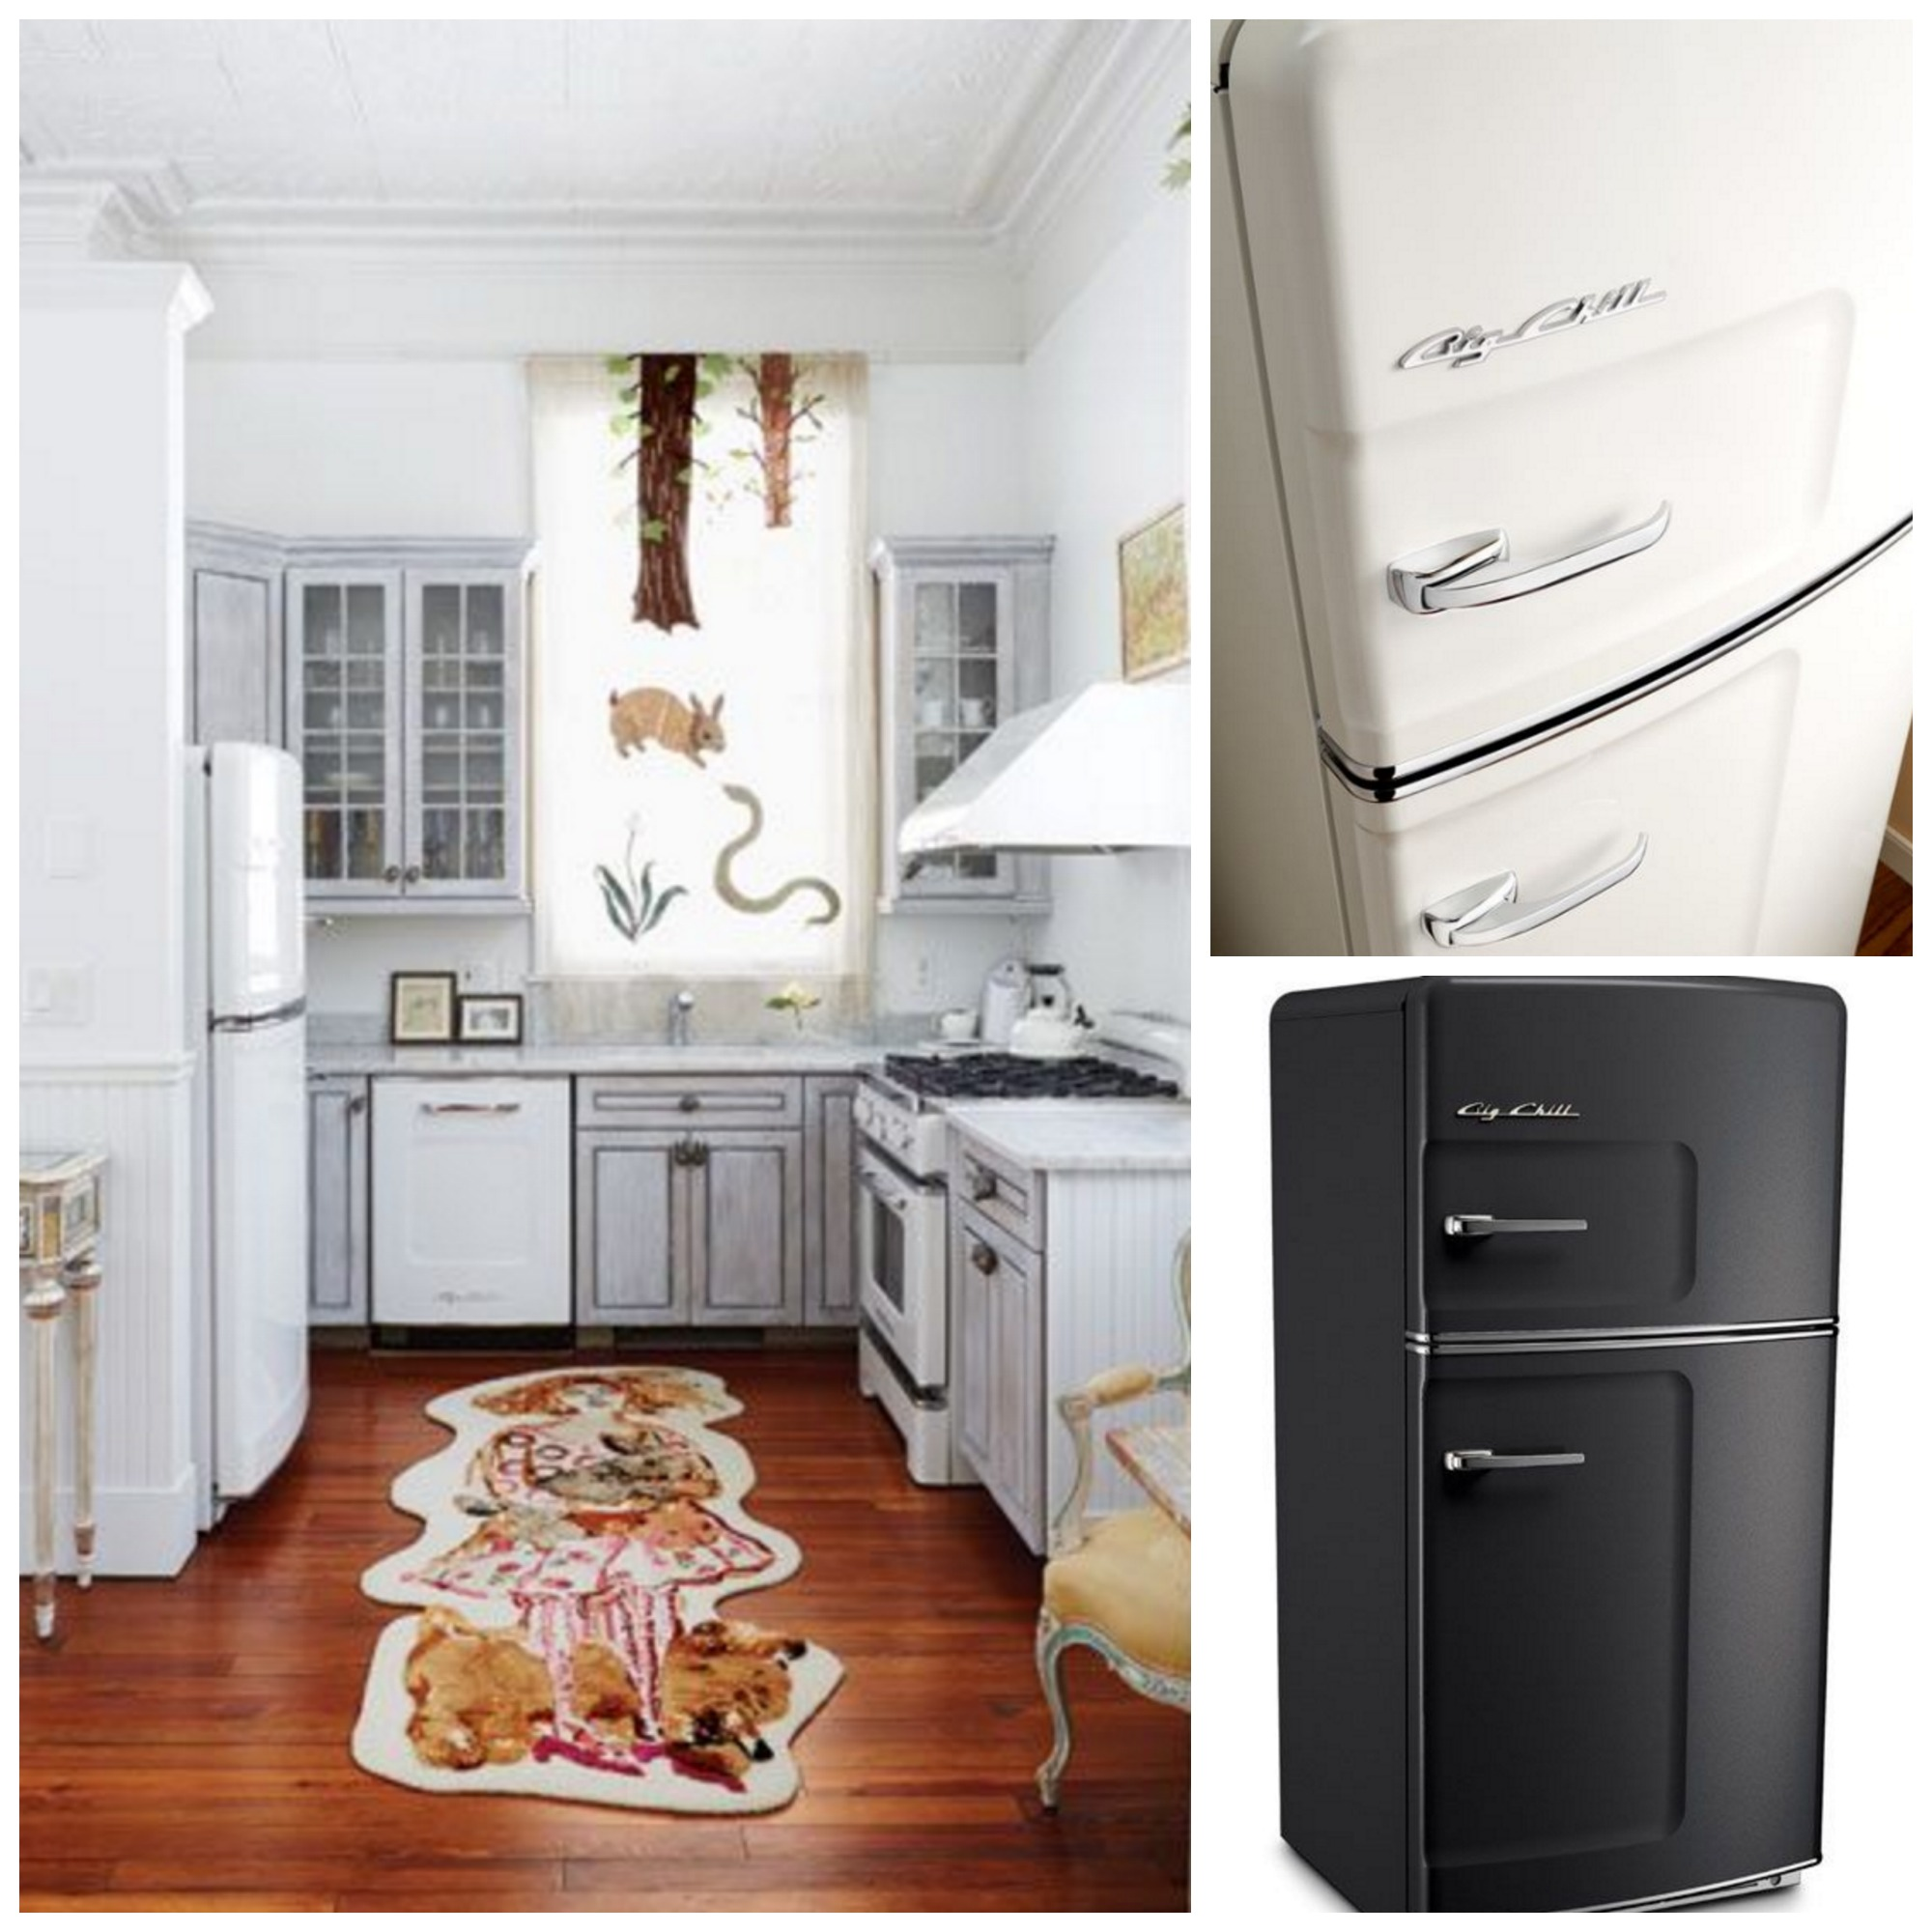 Fact: You Canu0027t Go Wrong With Black And White. If You Arenu0027t A Huge Fan Of  Color But Still Want To Maintain A Vintage Kitchen Aesthetic, A Black And  White ...